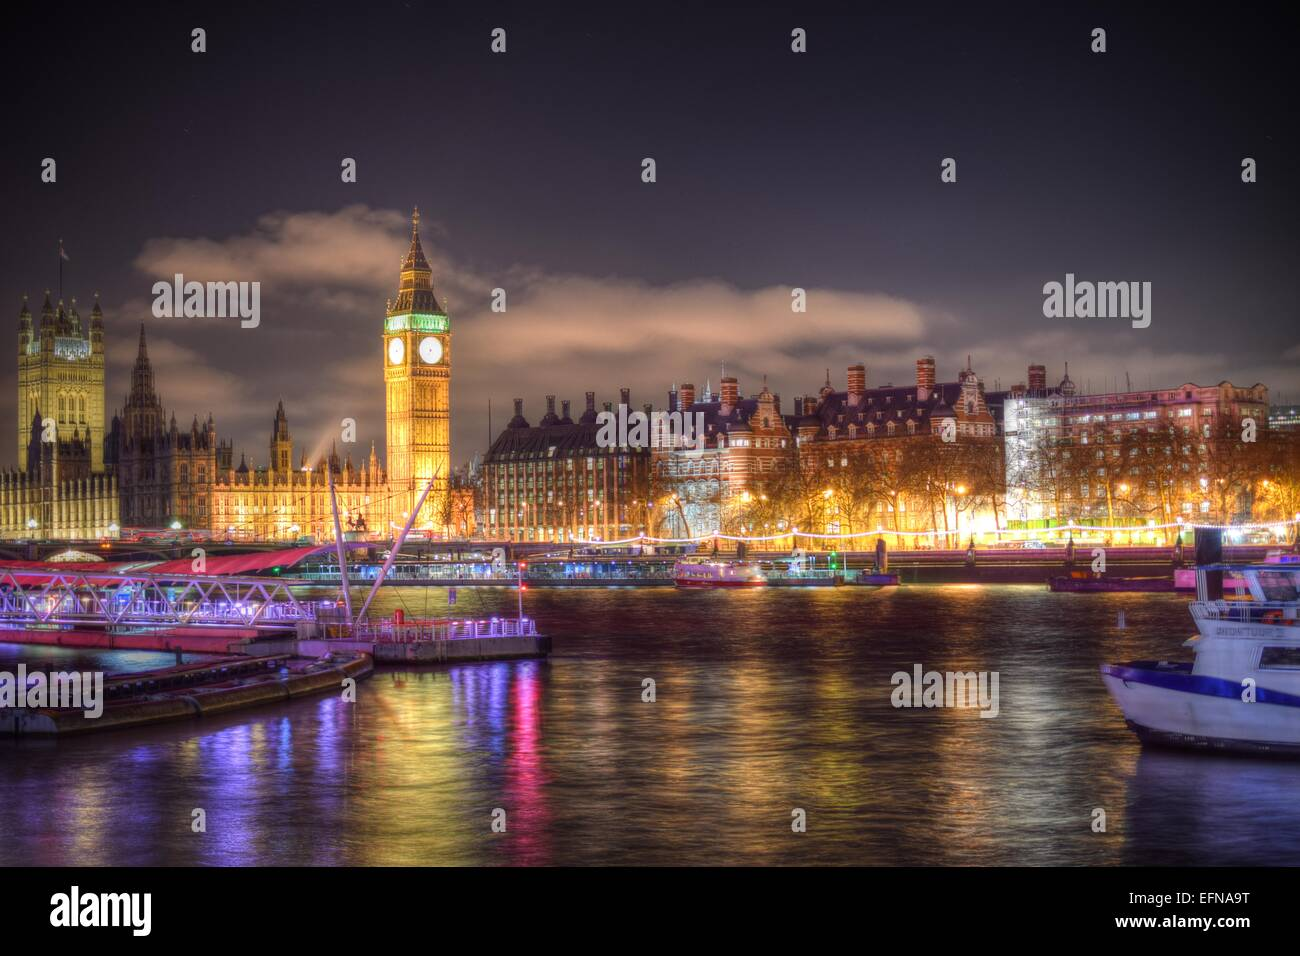 High Dynamic Range of London's Embankmen, Big Ben and Houses of Parliament. - Stock Image